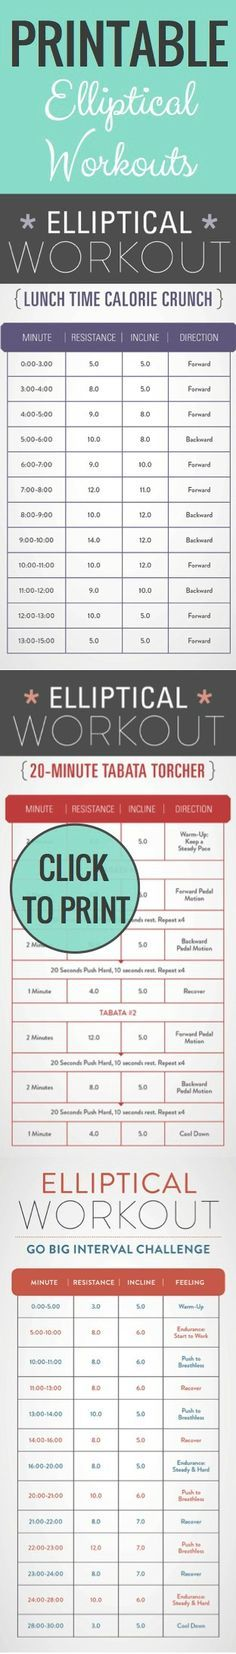 Beat those winter blues! Print these Elliptical #weightloss workouts and bring to the hotel, your basement or to the gym! Stay motivated and burn major calories!